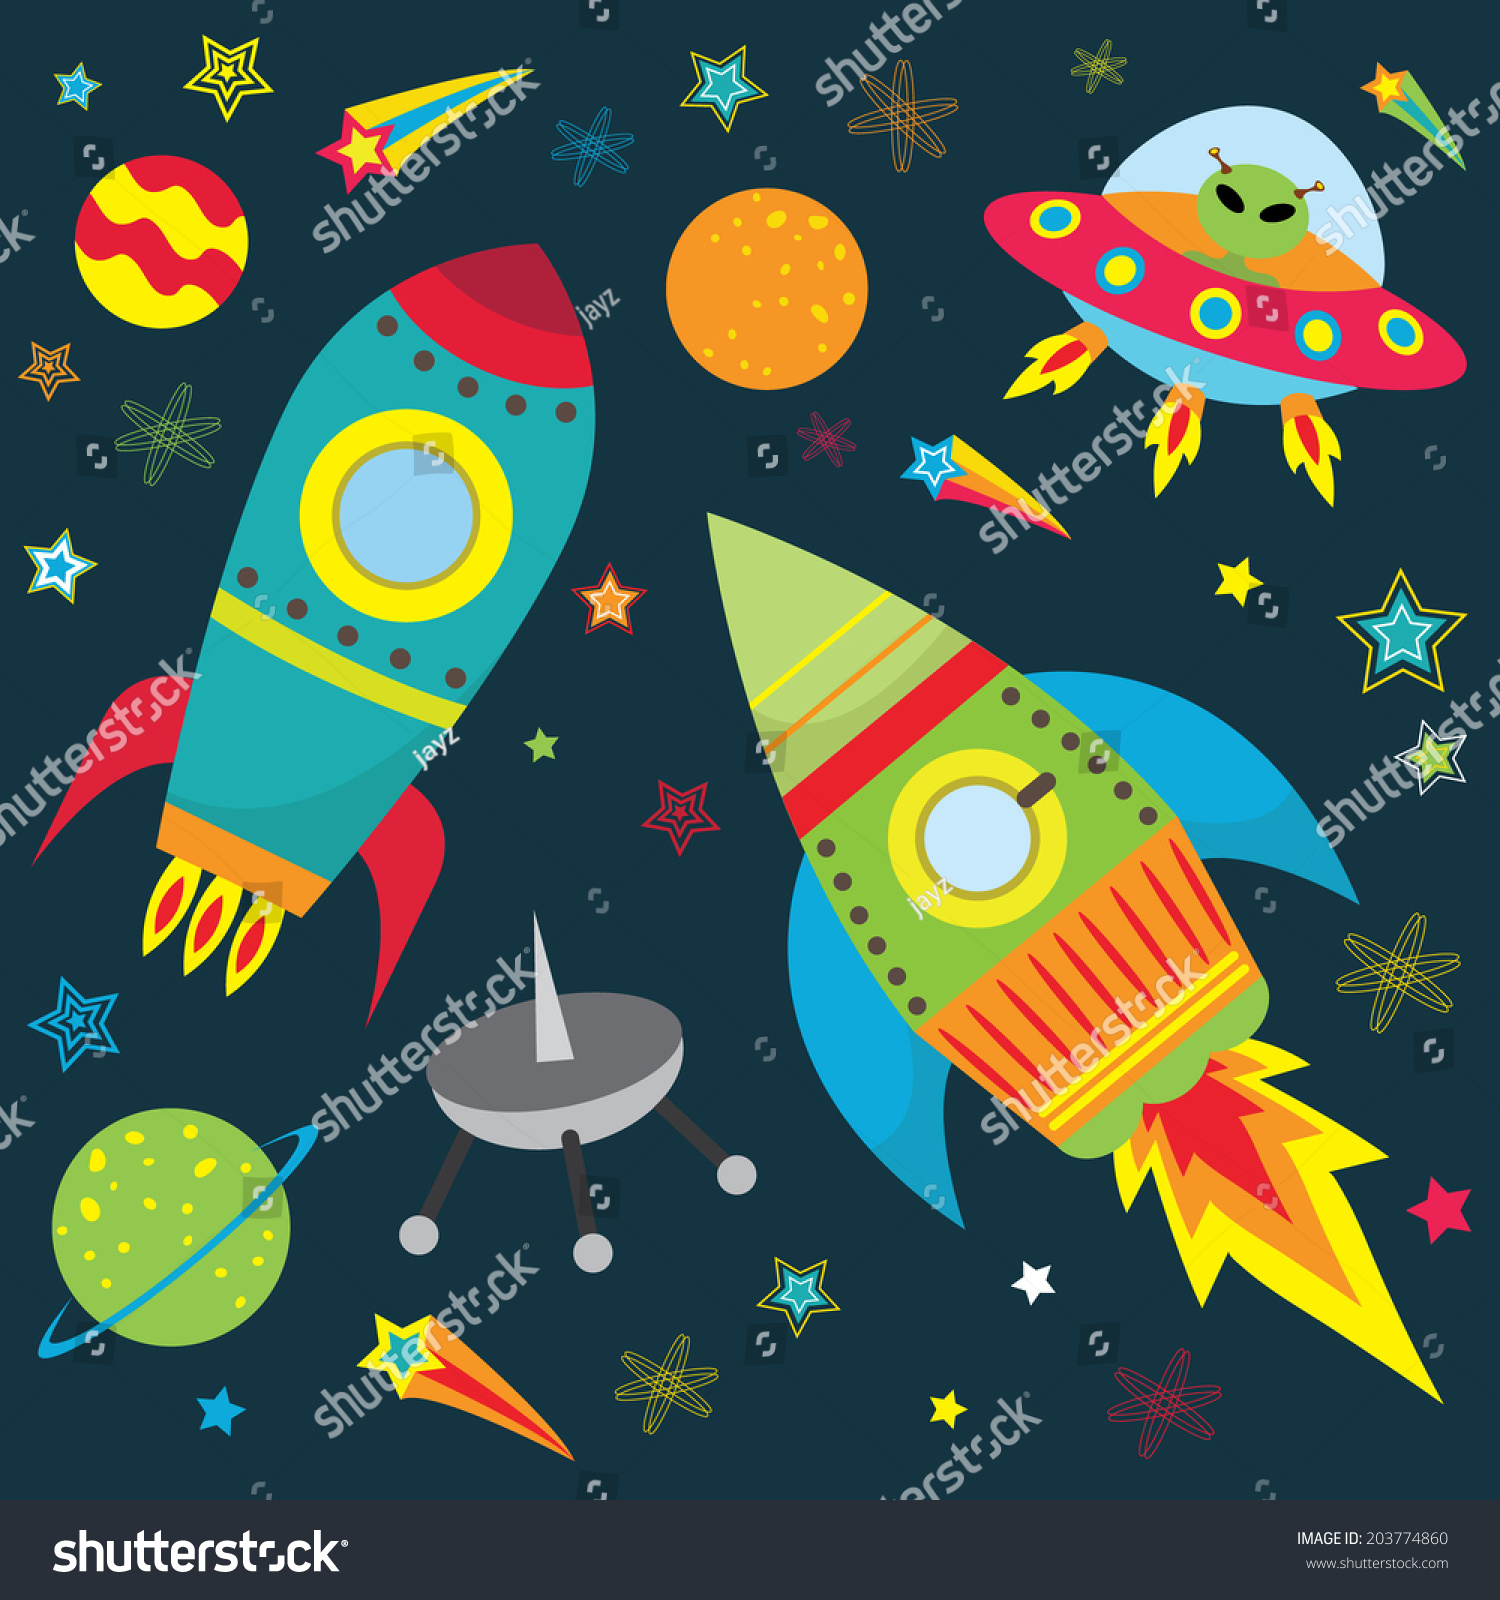 Outer space design set illustration stock vector 203774860 for Outer space design richmond